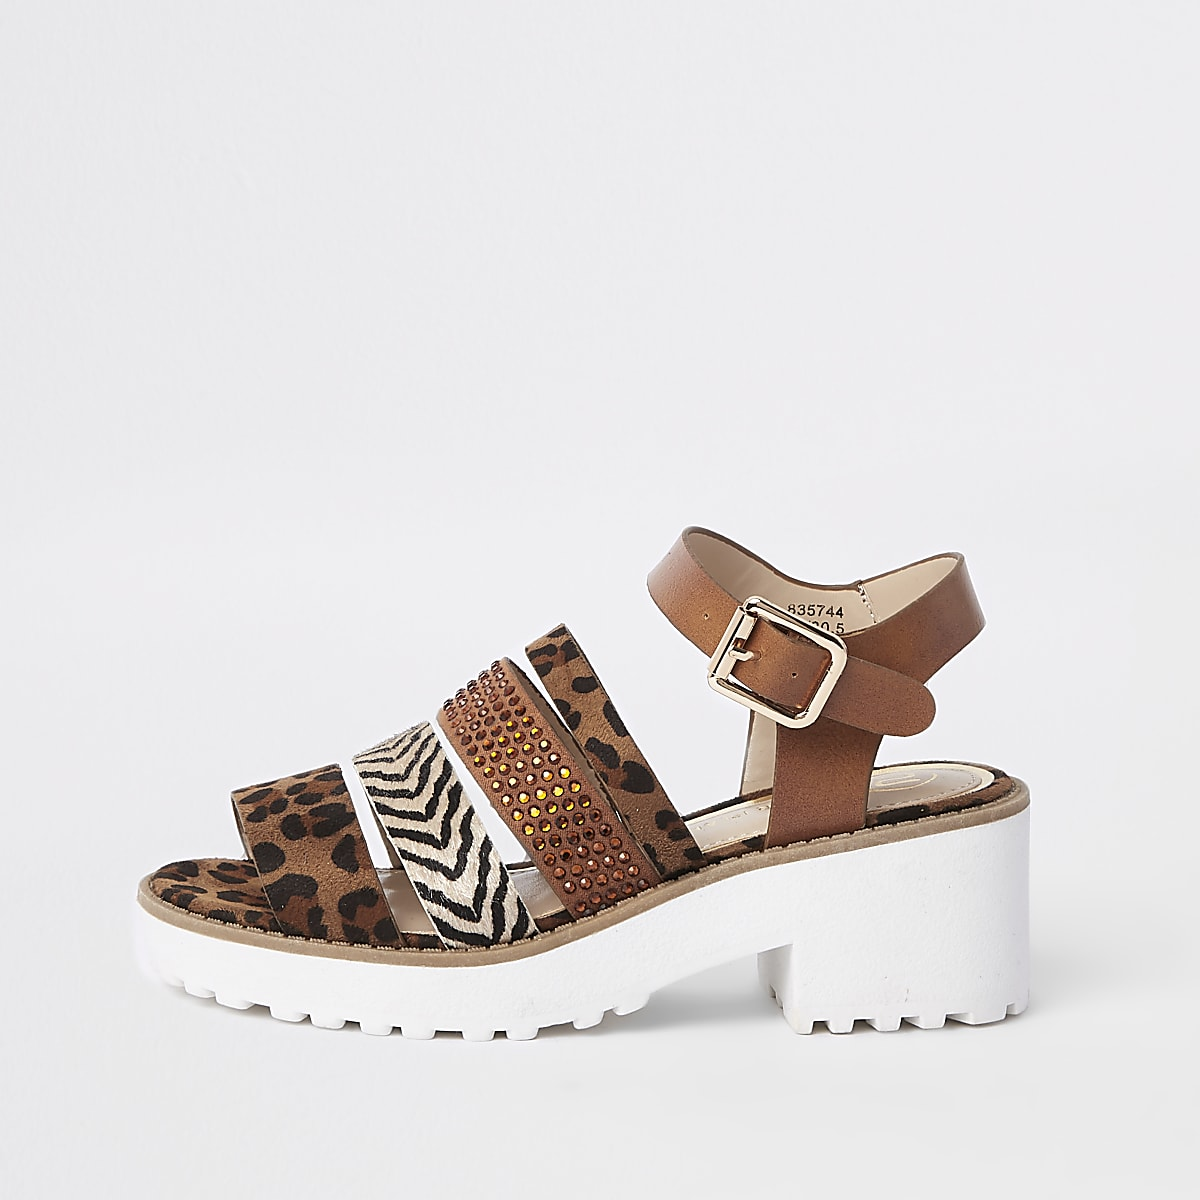 Girls brown animal print clumpy sandals